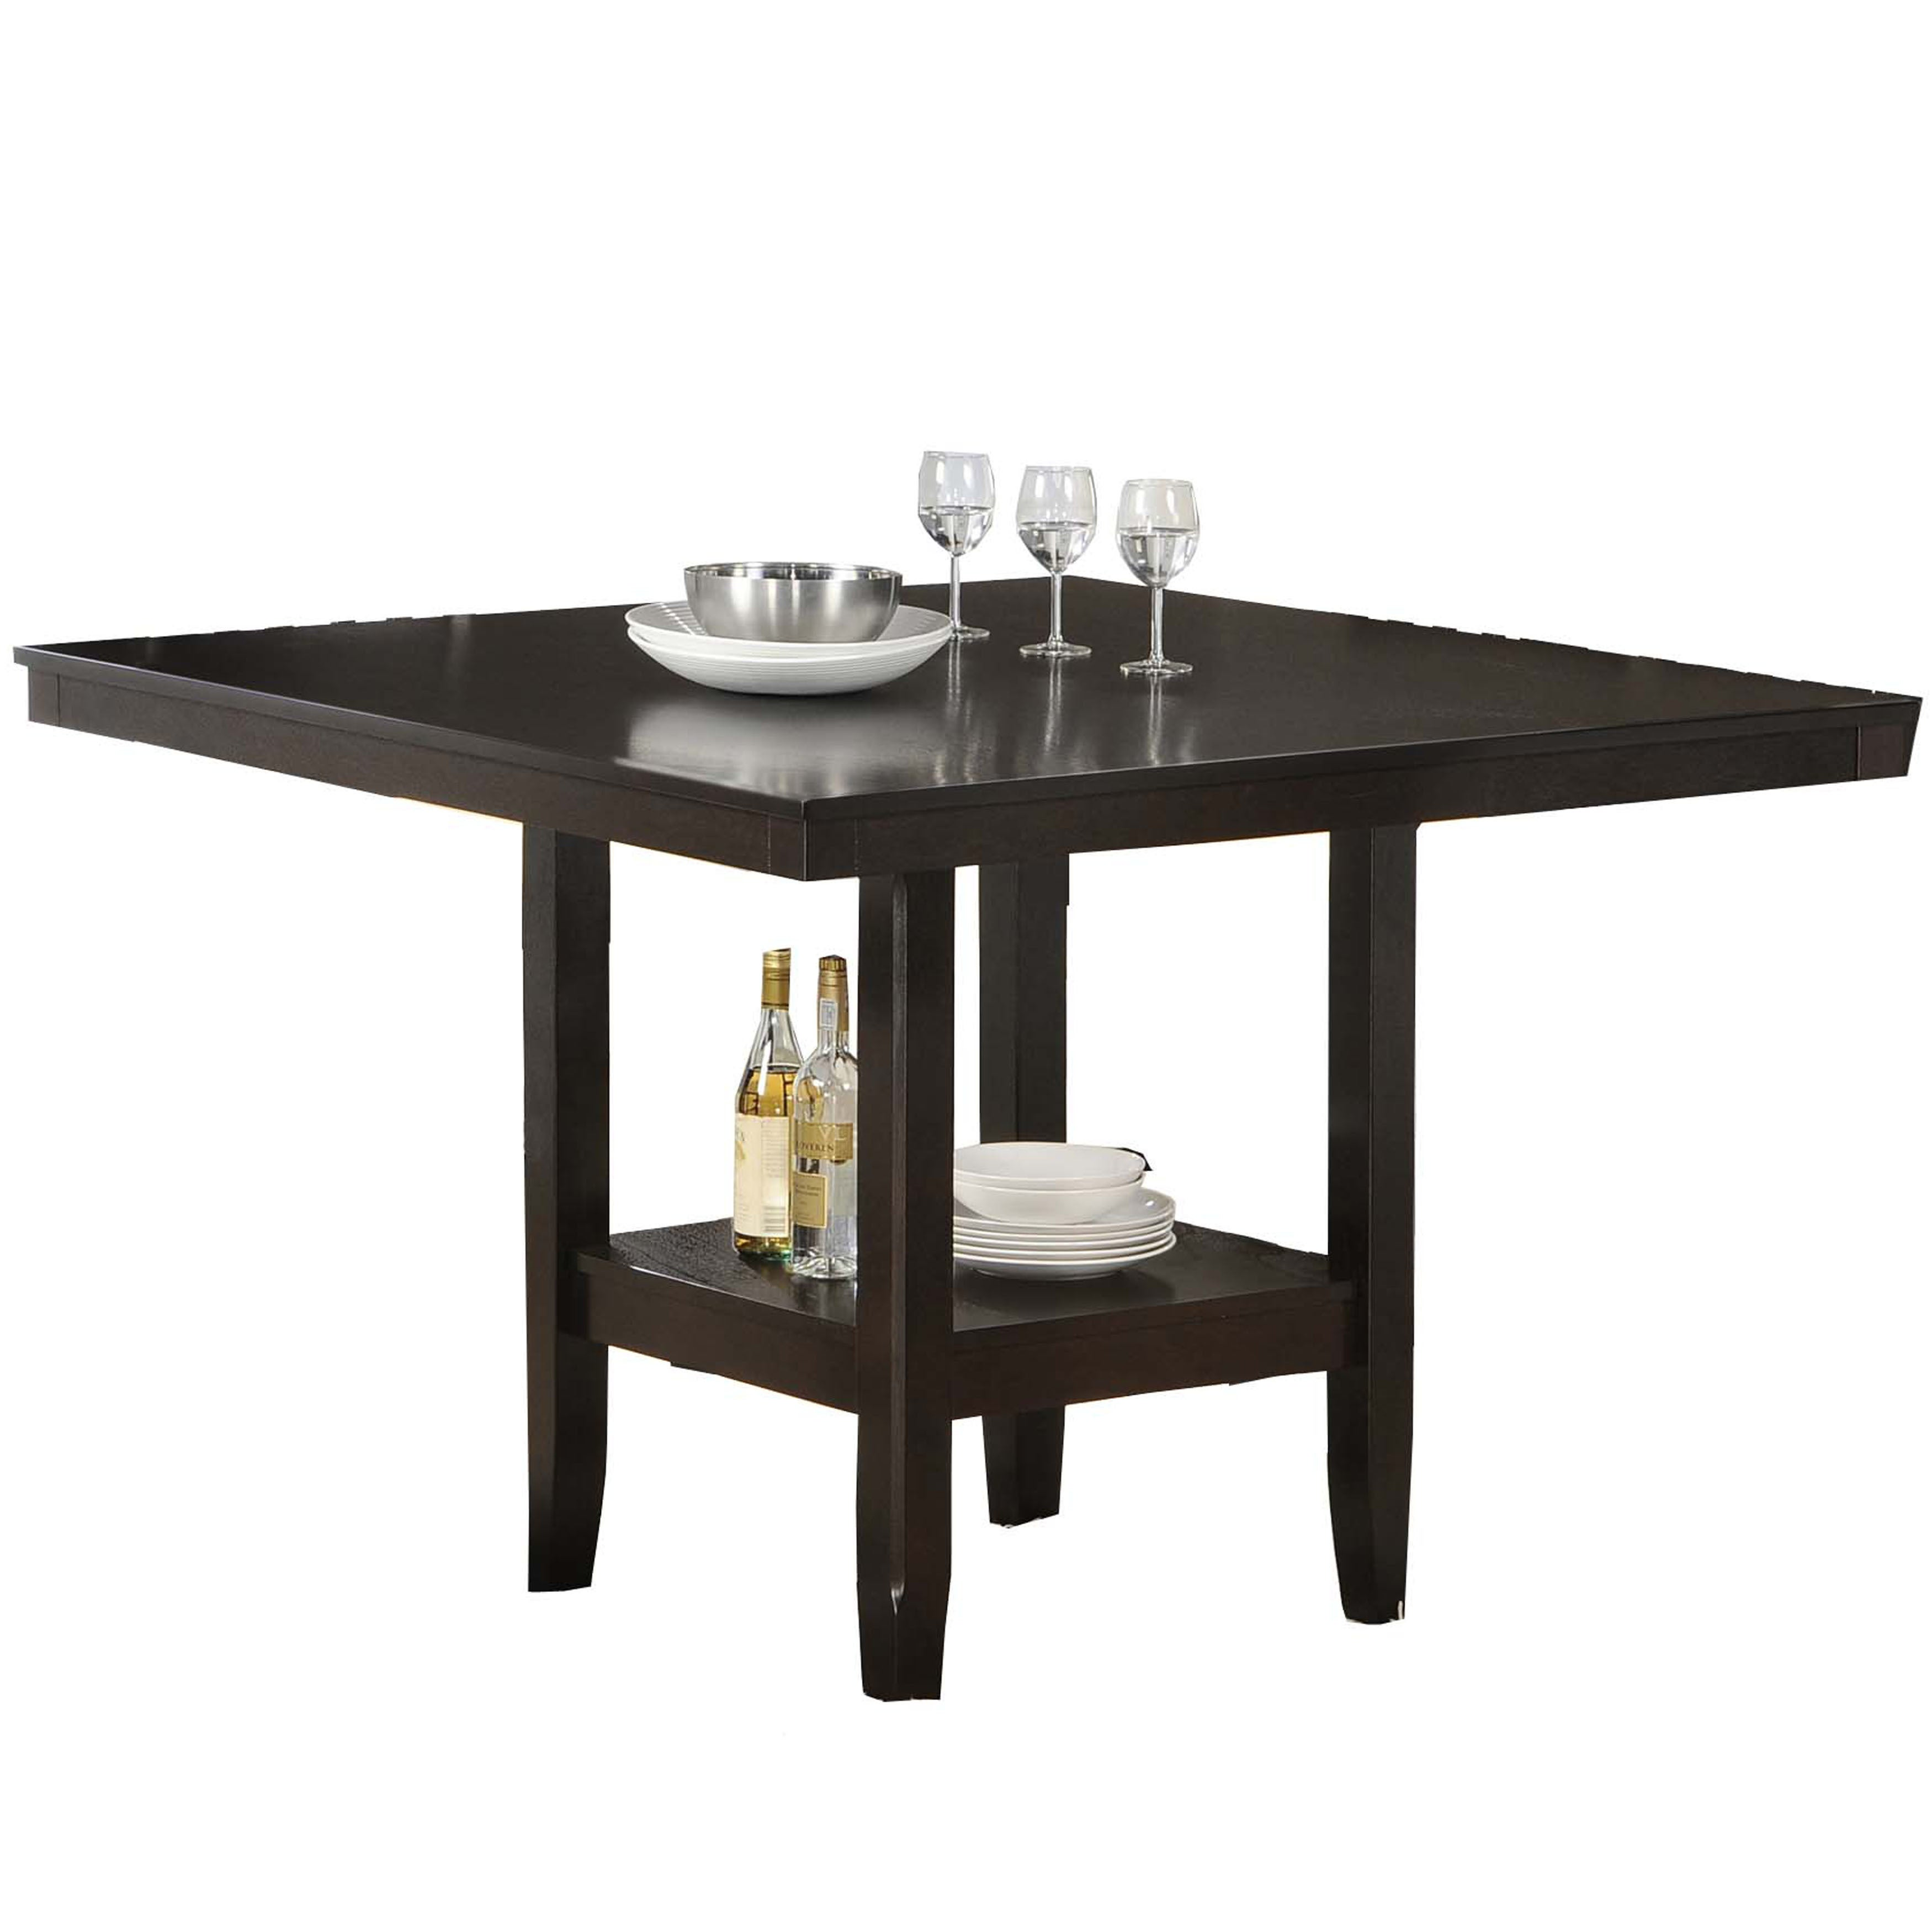 Hillsdale Furniture Tabacon Counter Height Table in Cappu...